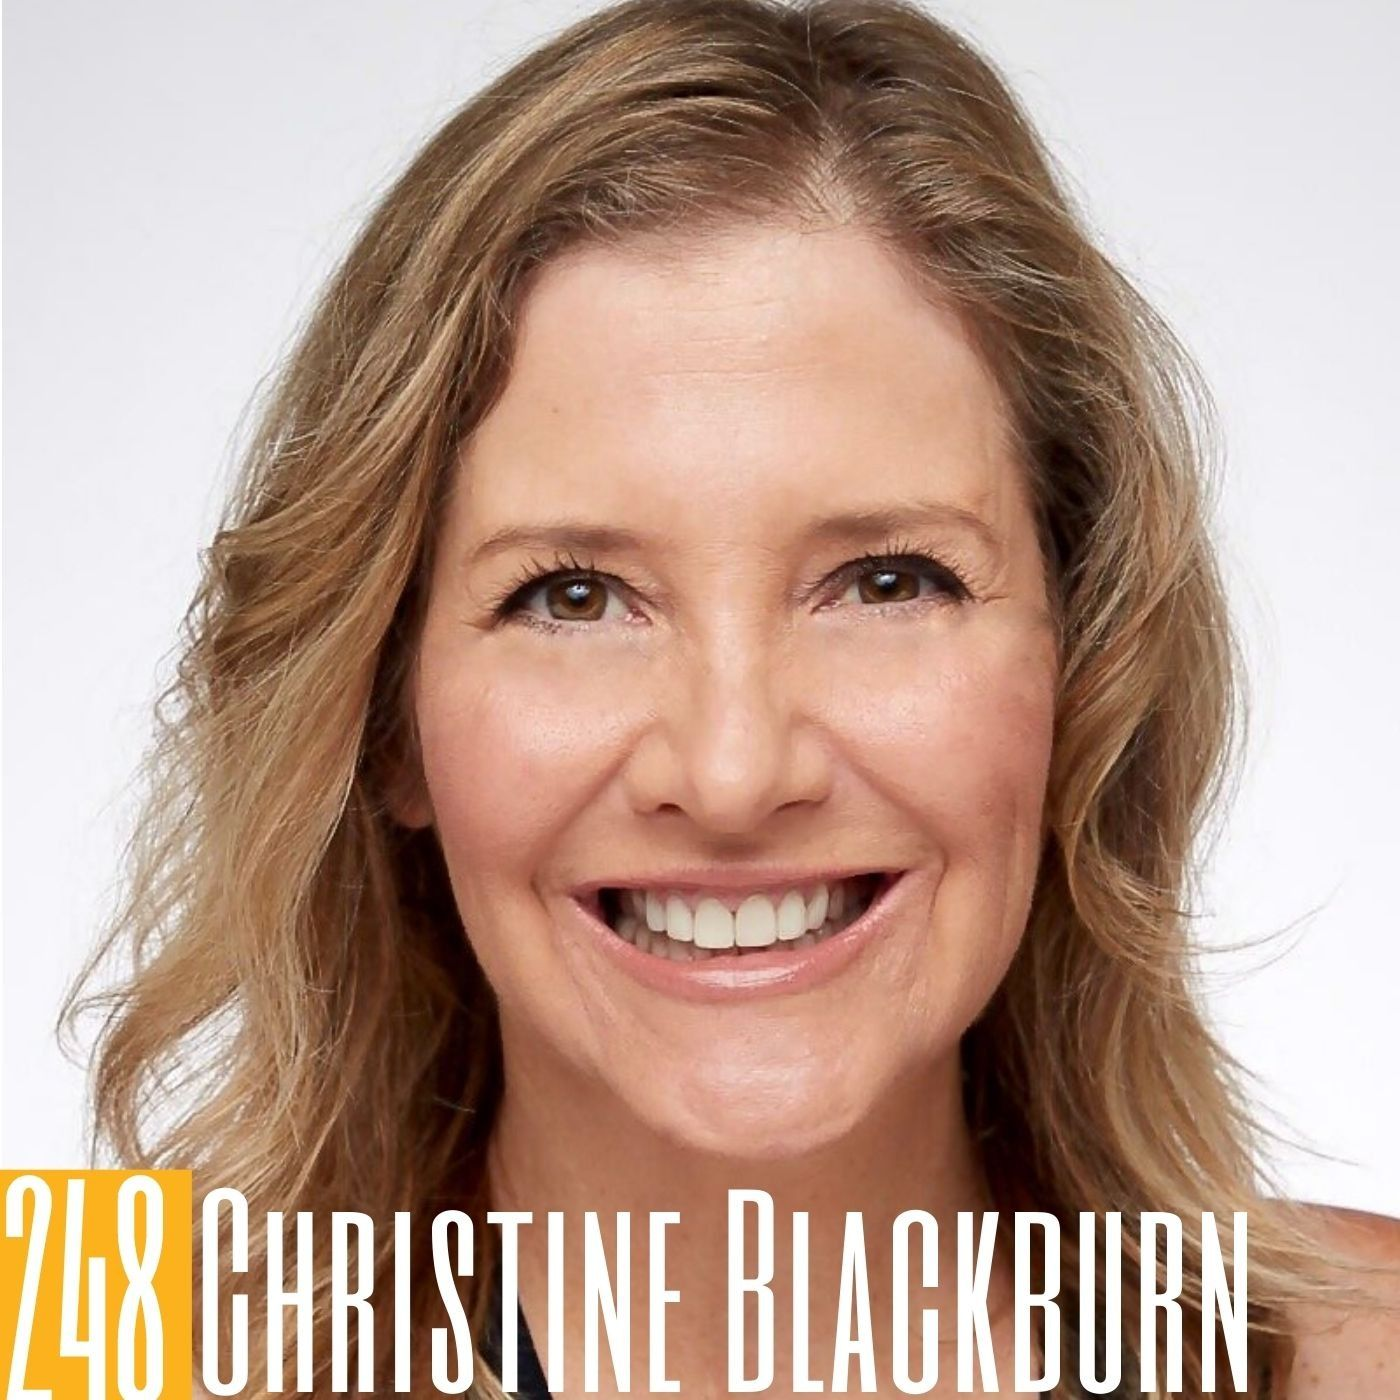 248 Christine Blackburn - The Ingenuity of Podcasting with Podcast Ambassador